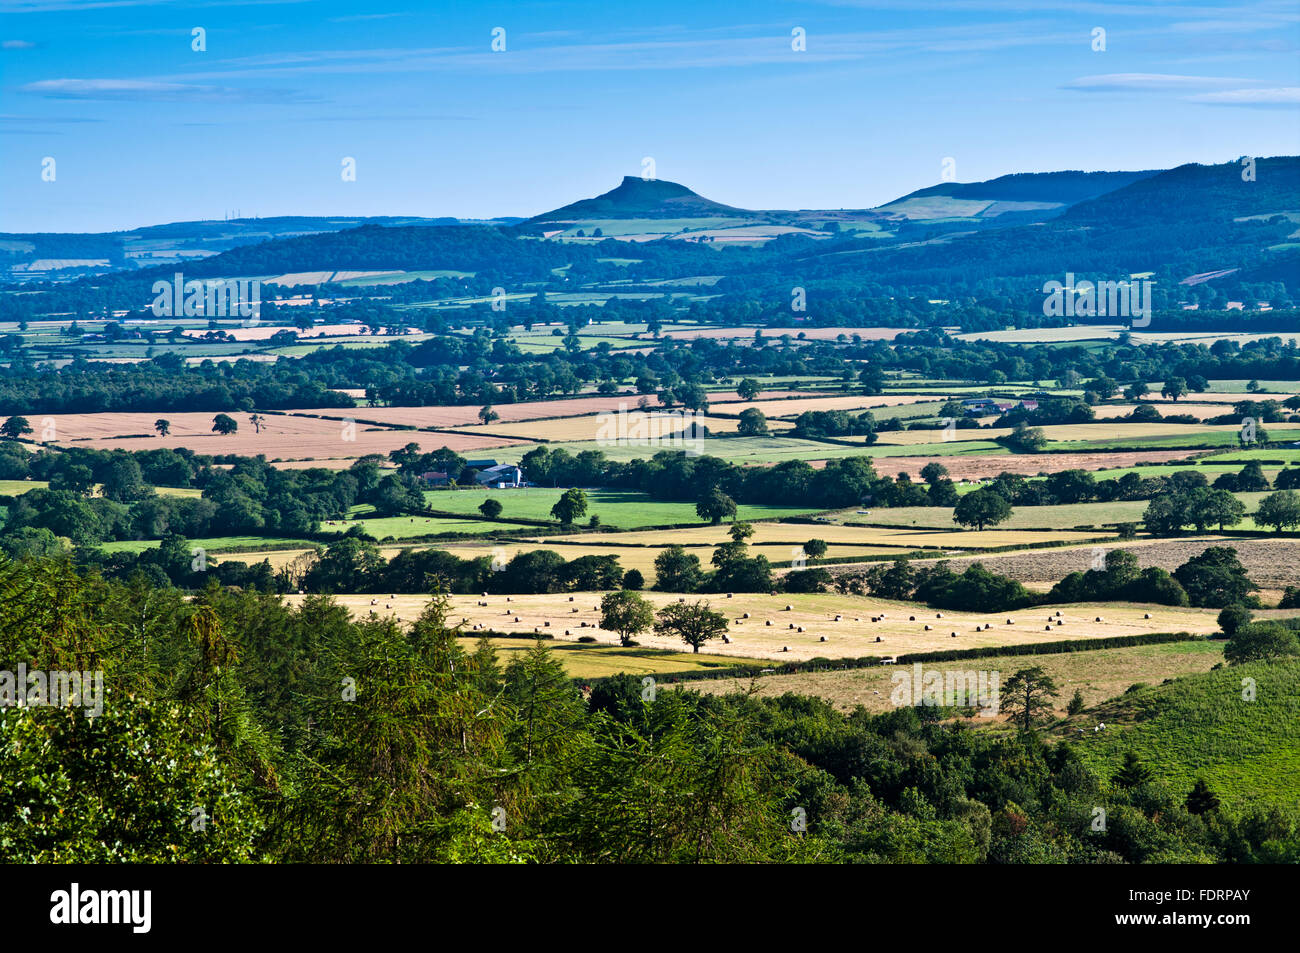 Summer view from Clay Bank across farmland in the vale to Roseberry Topping, North York Moors, Yorkshire, England - Stock Image